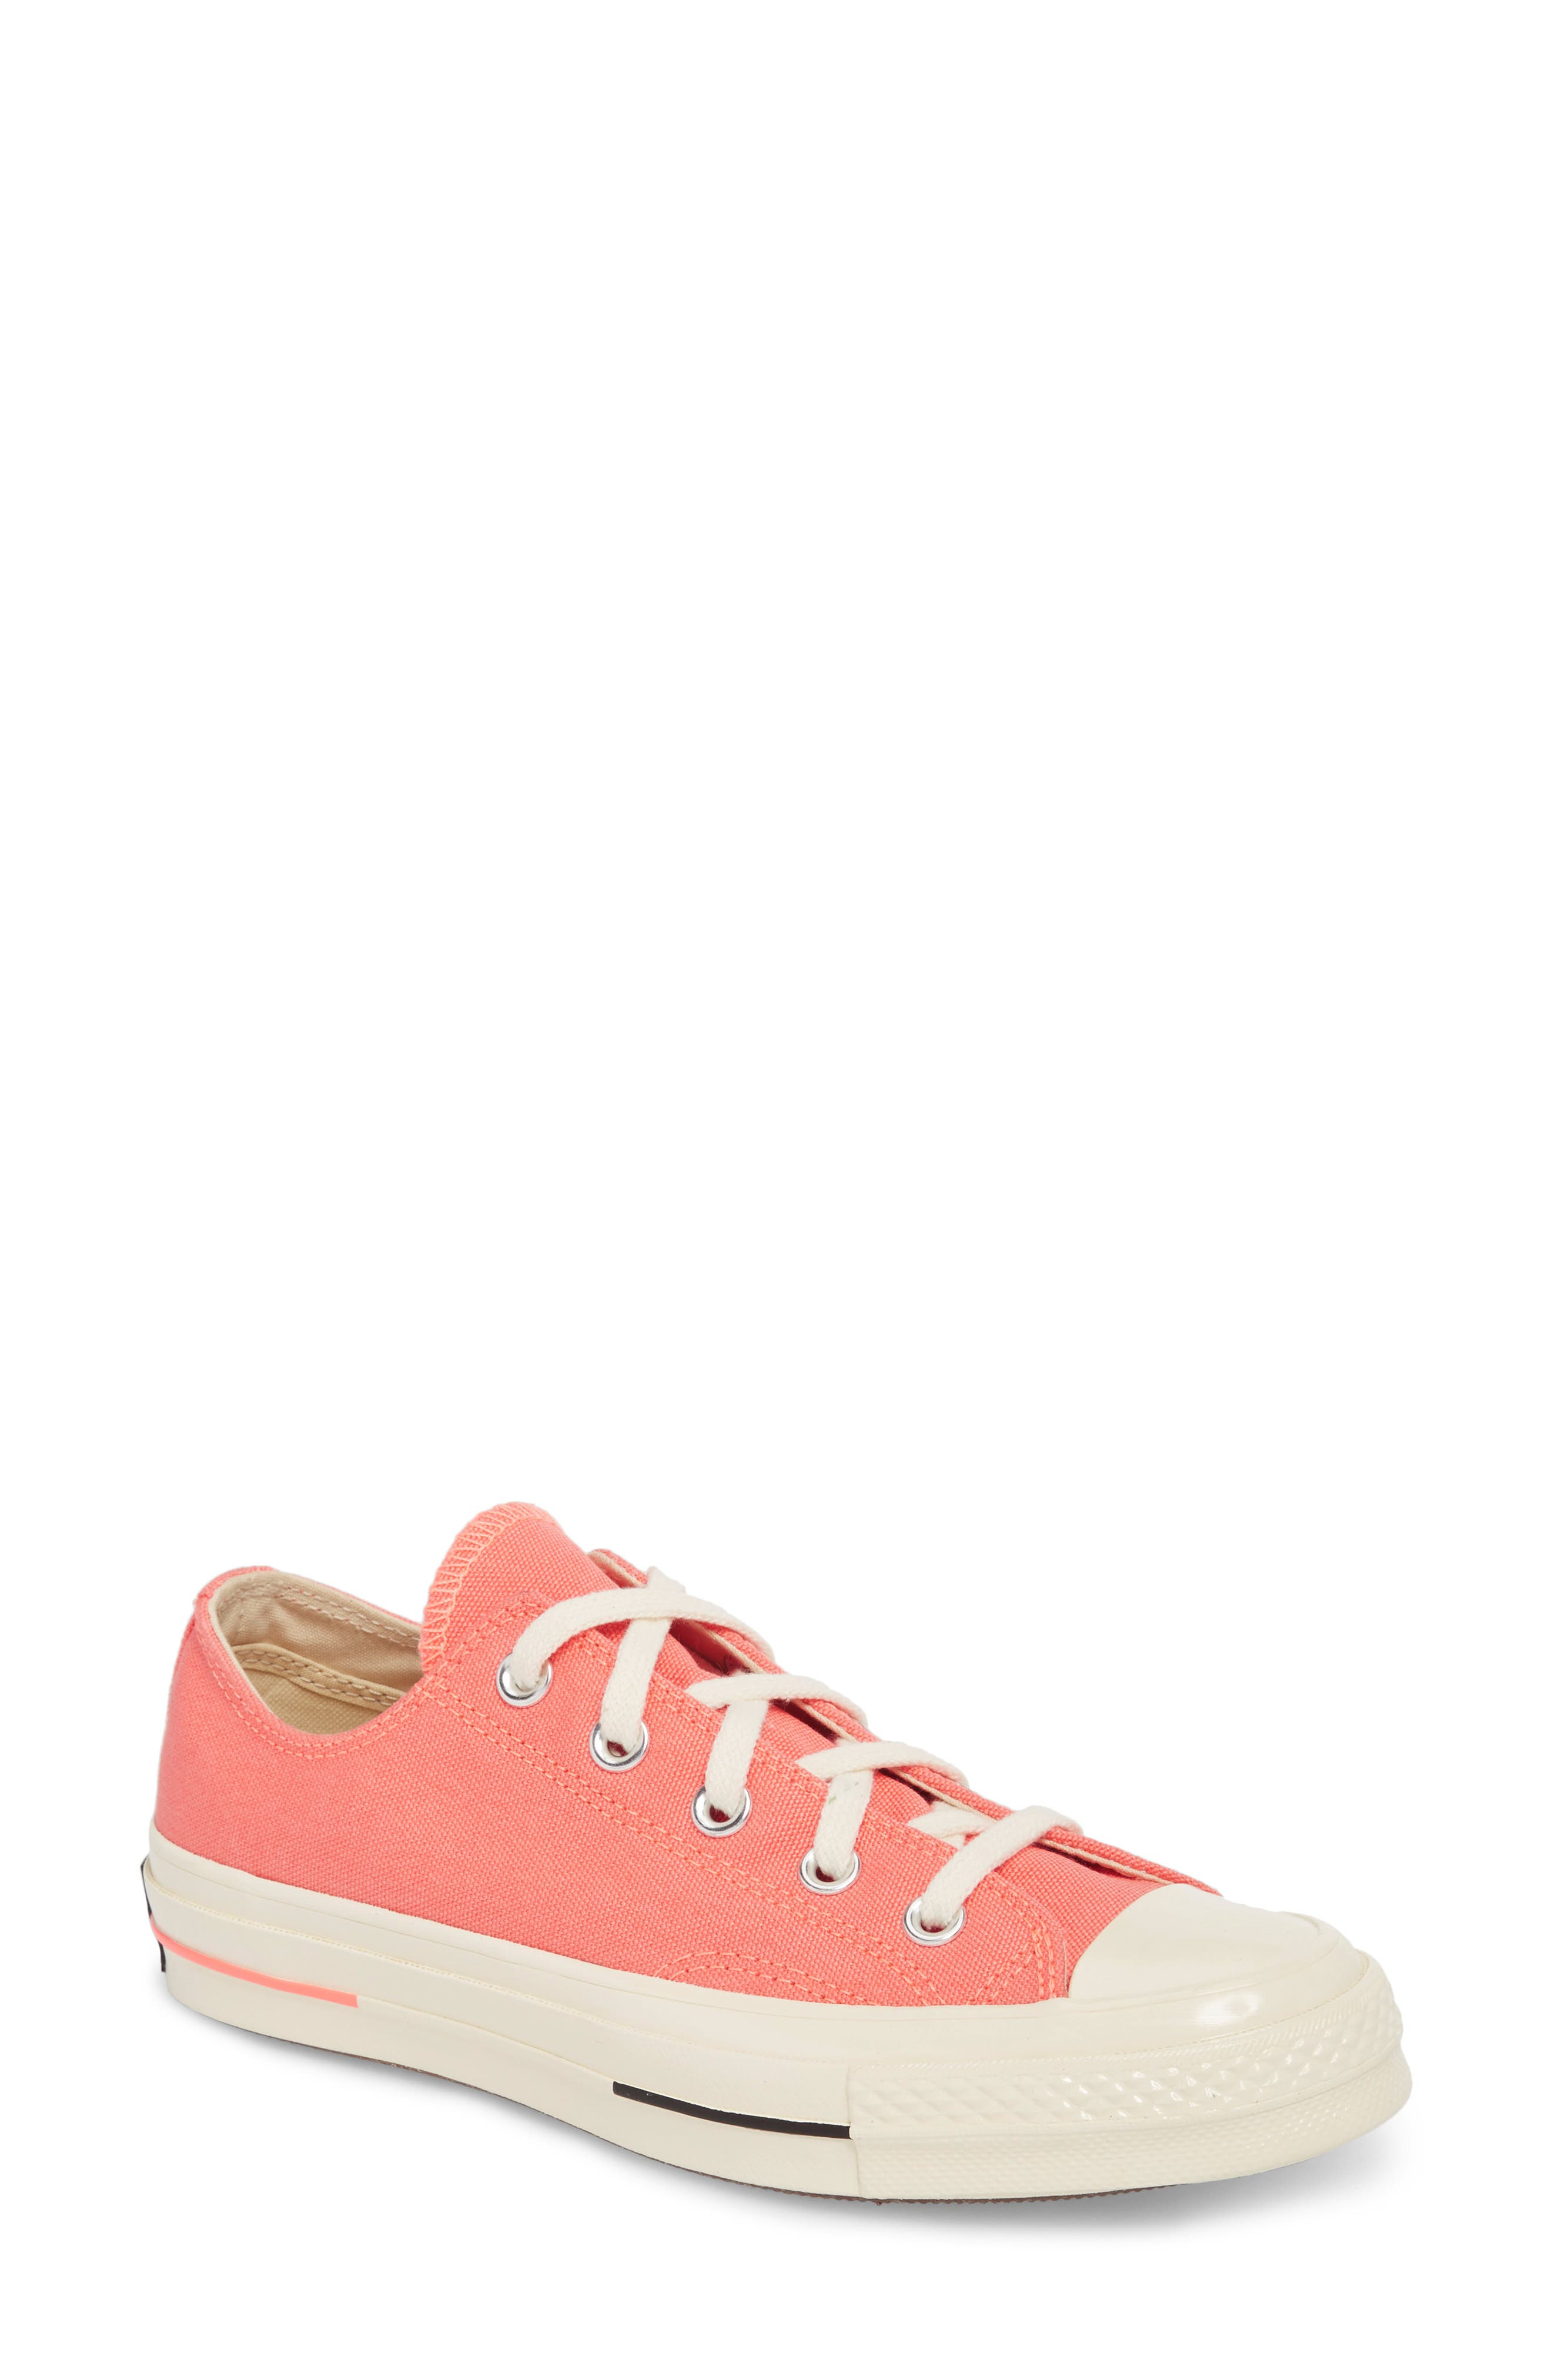 Chuck Taylor<sup>®</sup> All Star<sup>®</sup> '70s Brights Low Top Sneaker,                             Main thumbnail 1, color,                             CRIMSON PULSE